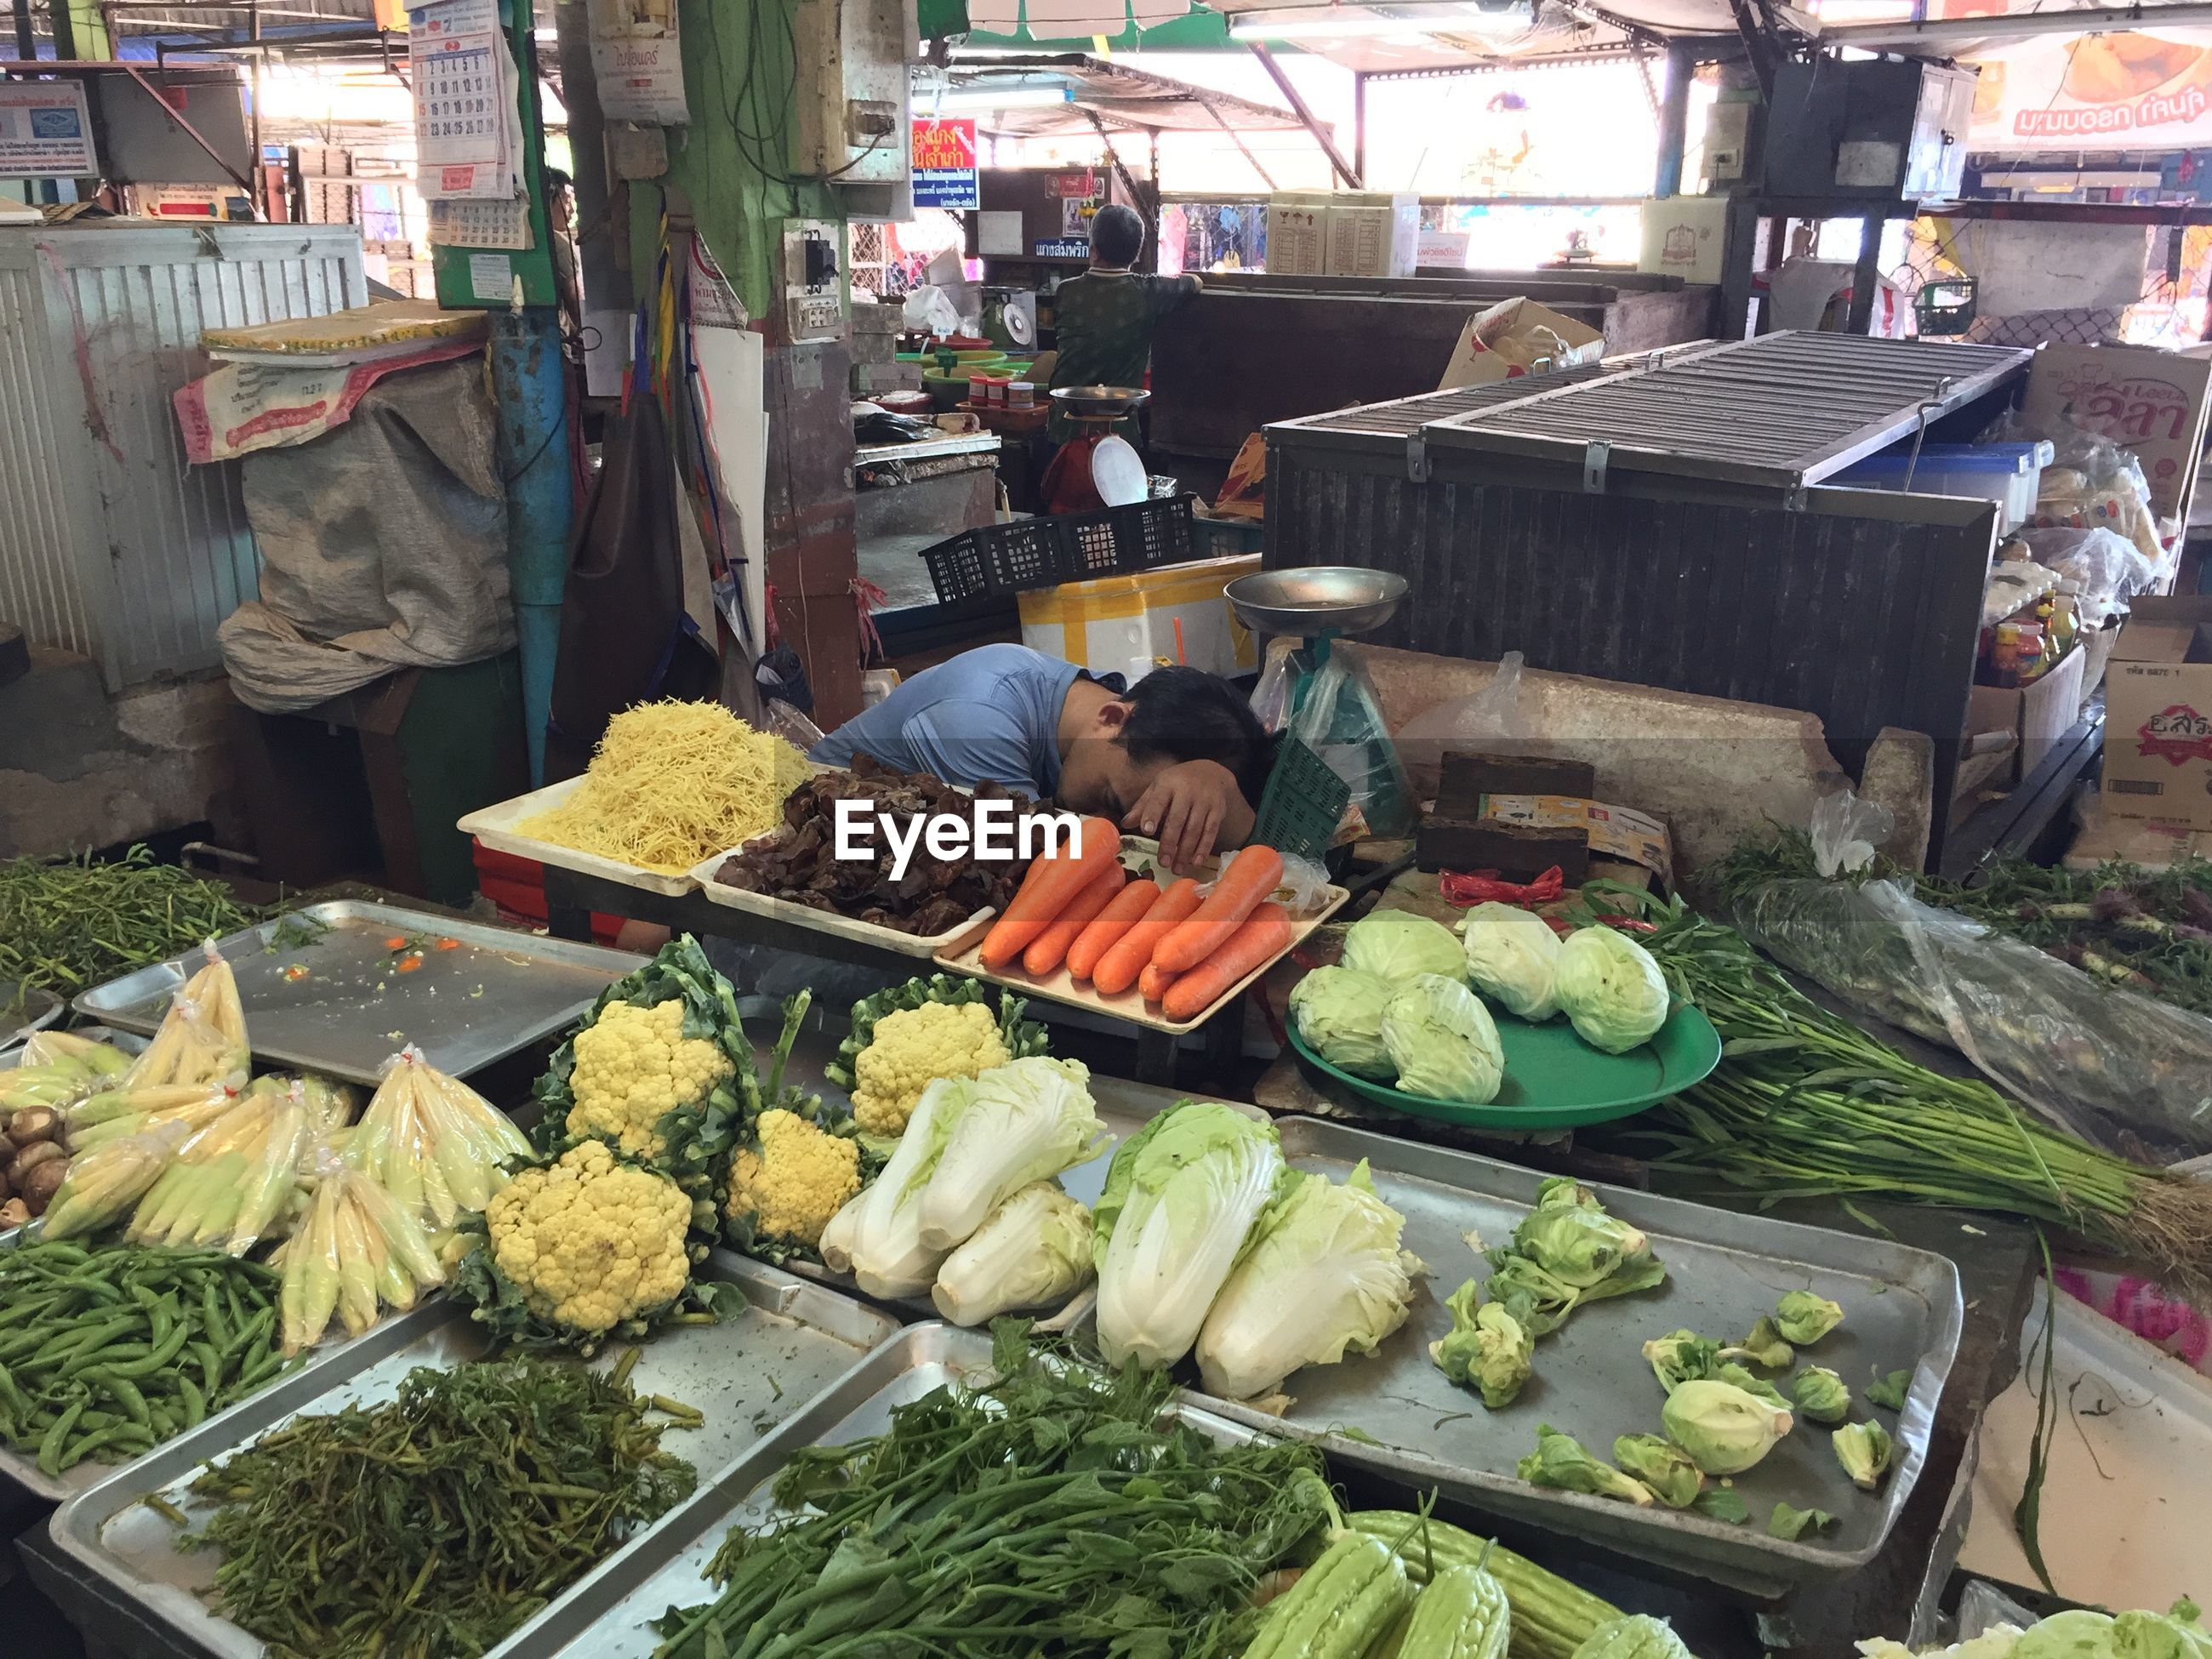 Man sleeping by vegetables at market